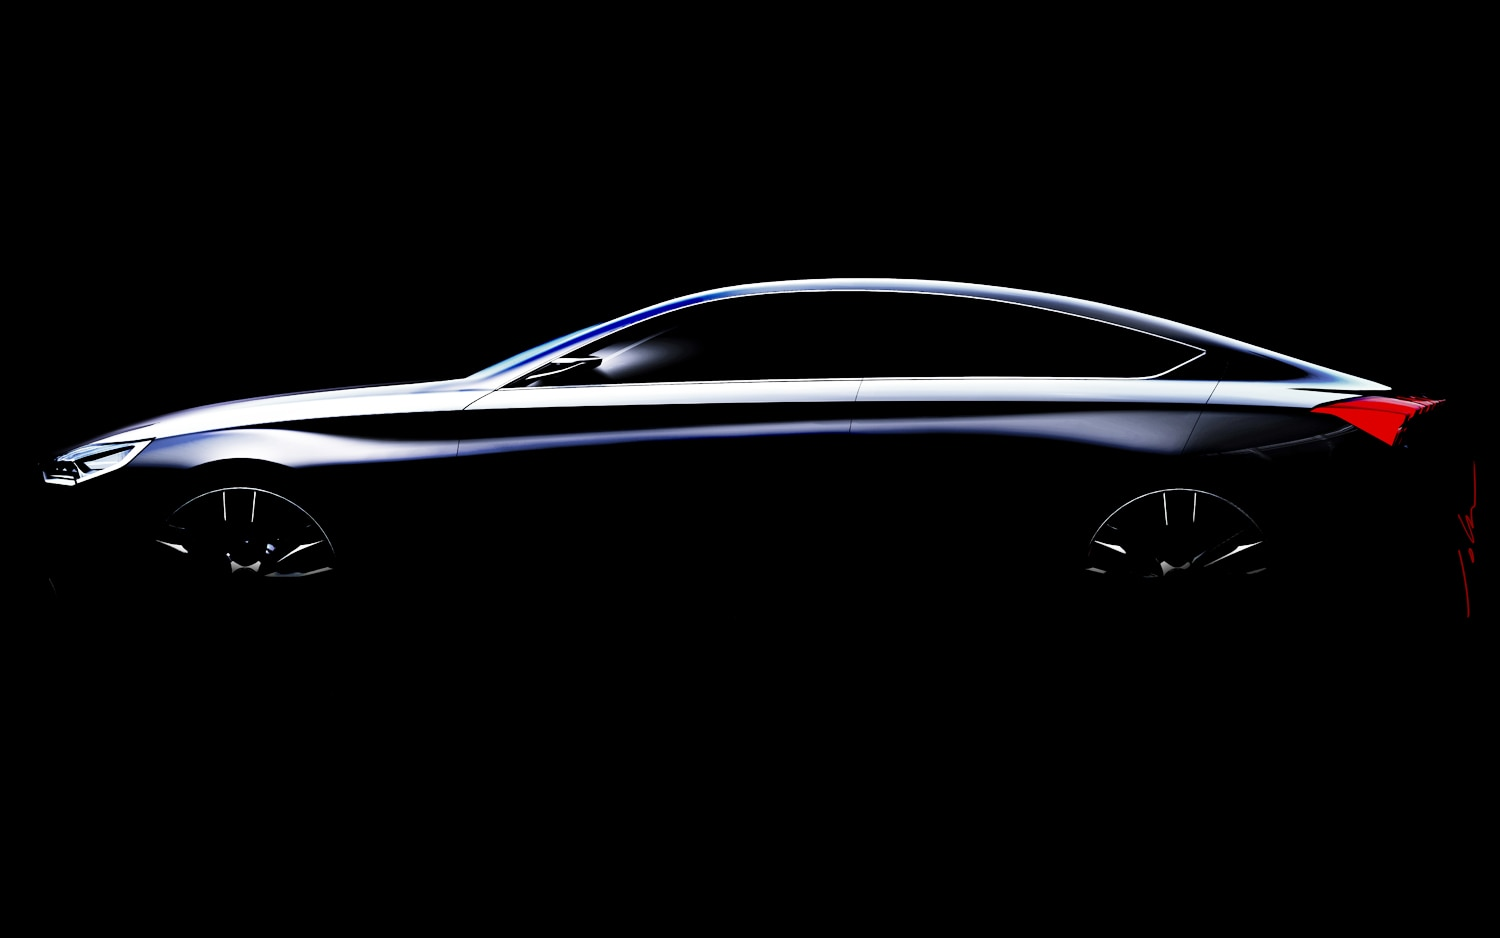 Hyundai HCD 14 Concept Teaser Lightened1